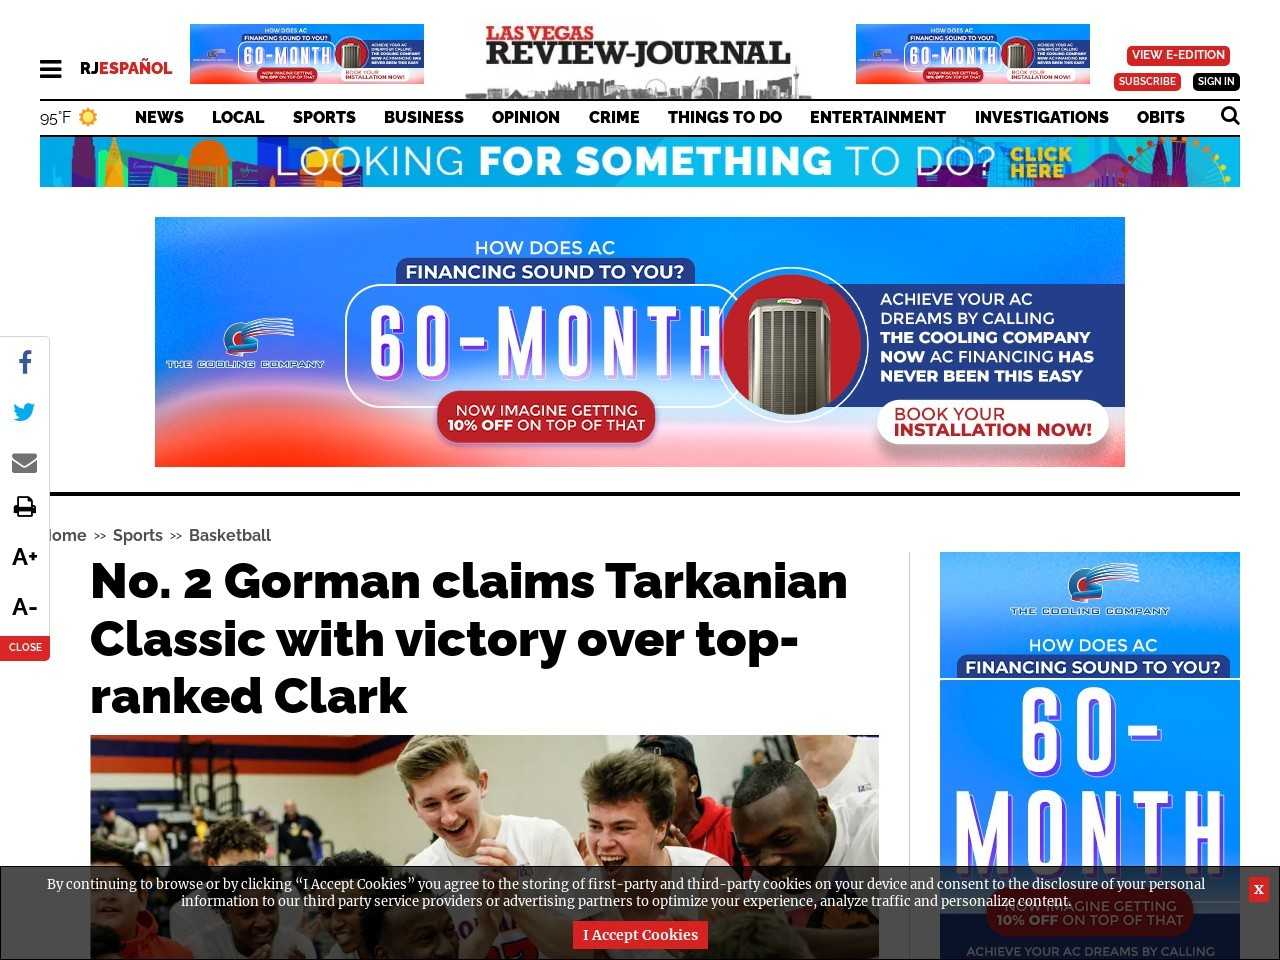 No. 2 Gorman claims Tarkanian Classic with victory over top-ranked Clark